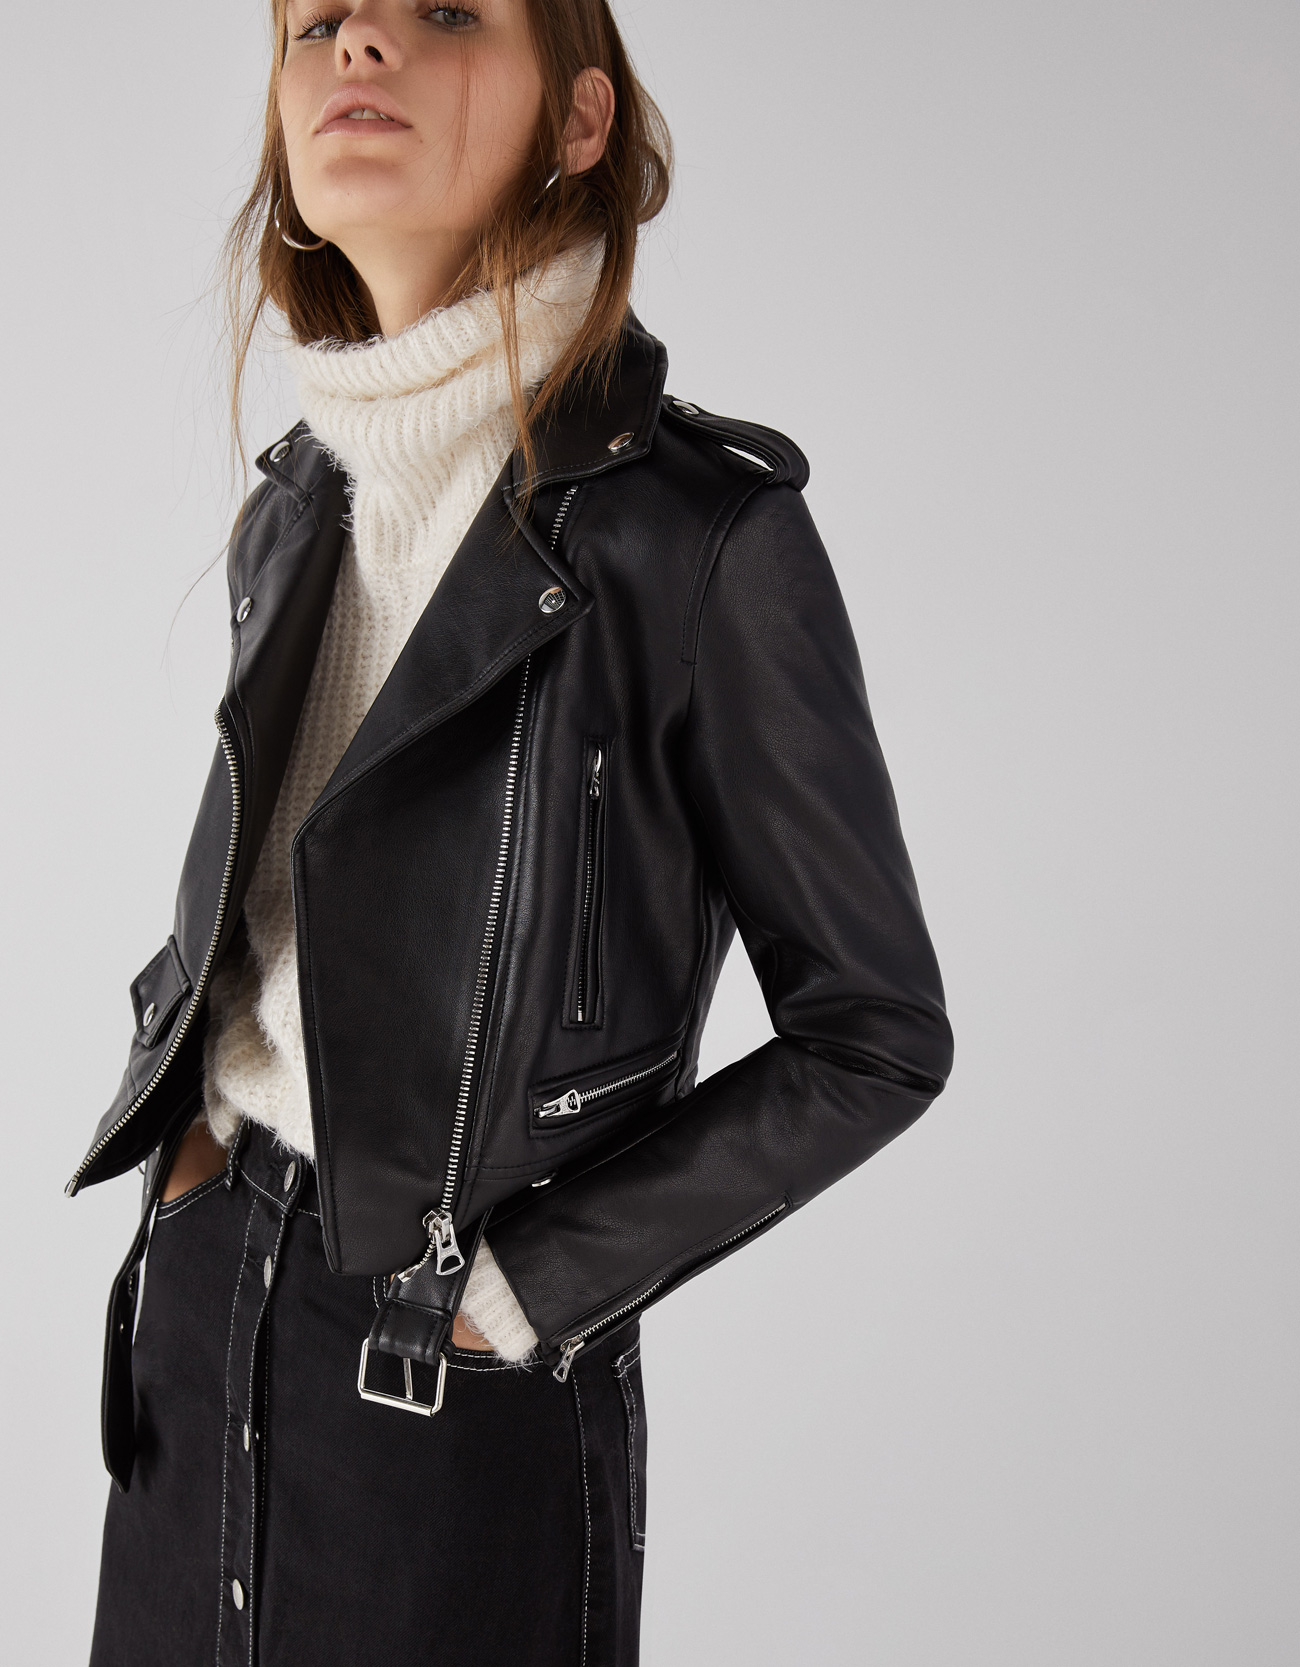 230fdc35a39 Bershka. Faux Leather Biker Jacket.  69.90. BUY